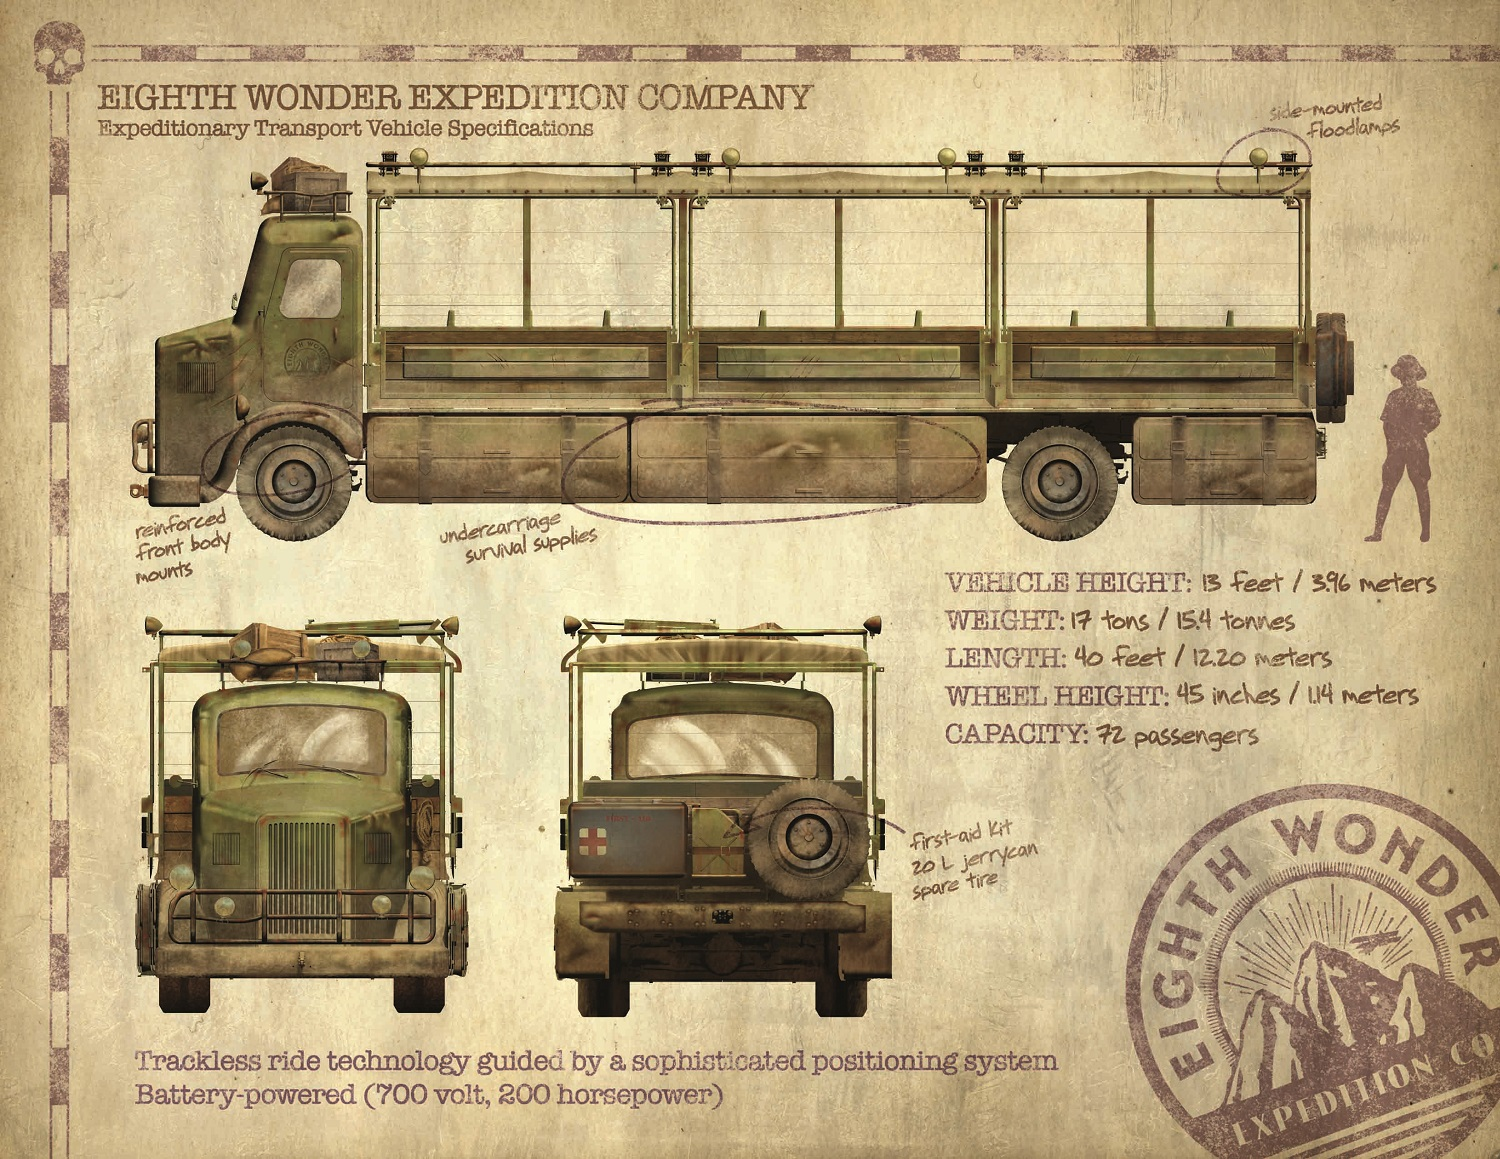 Skull Island: Reign of Kong Ride Vehicle Specifications